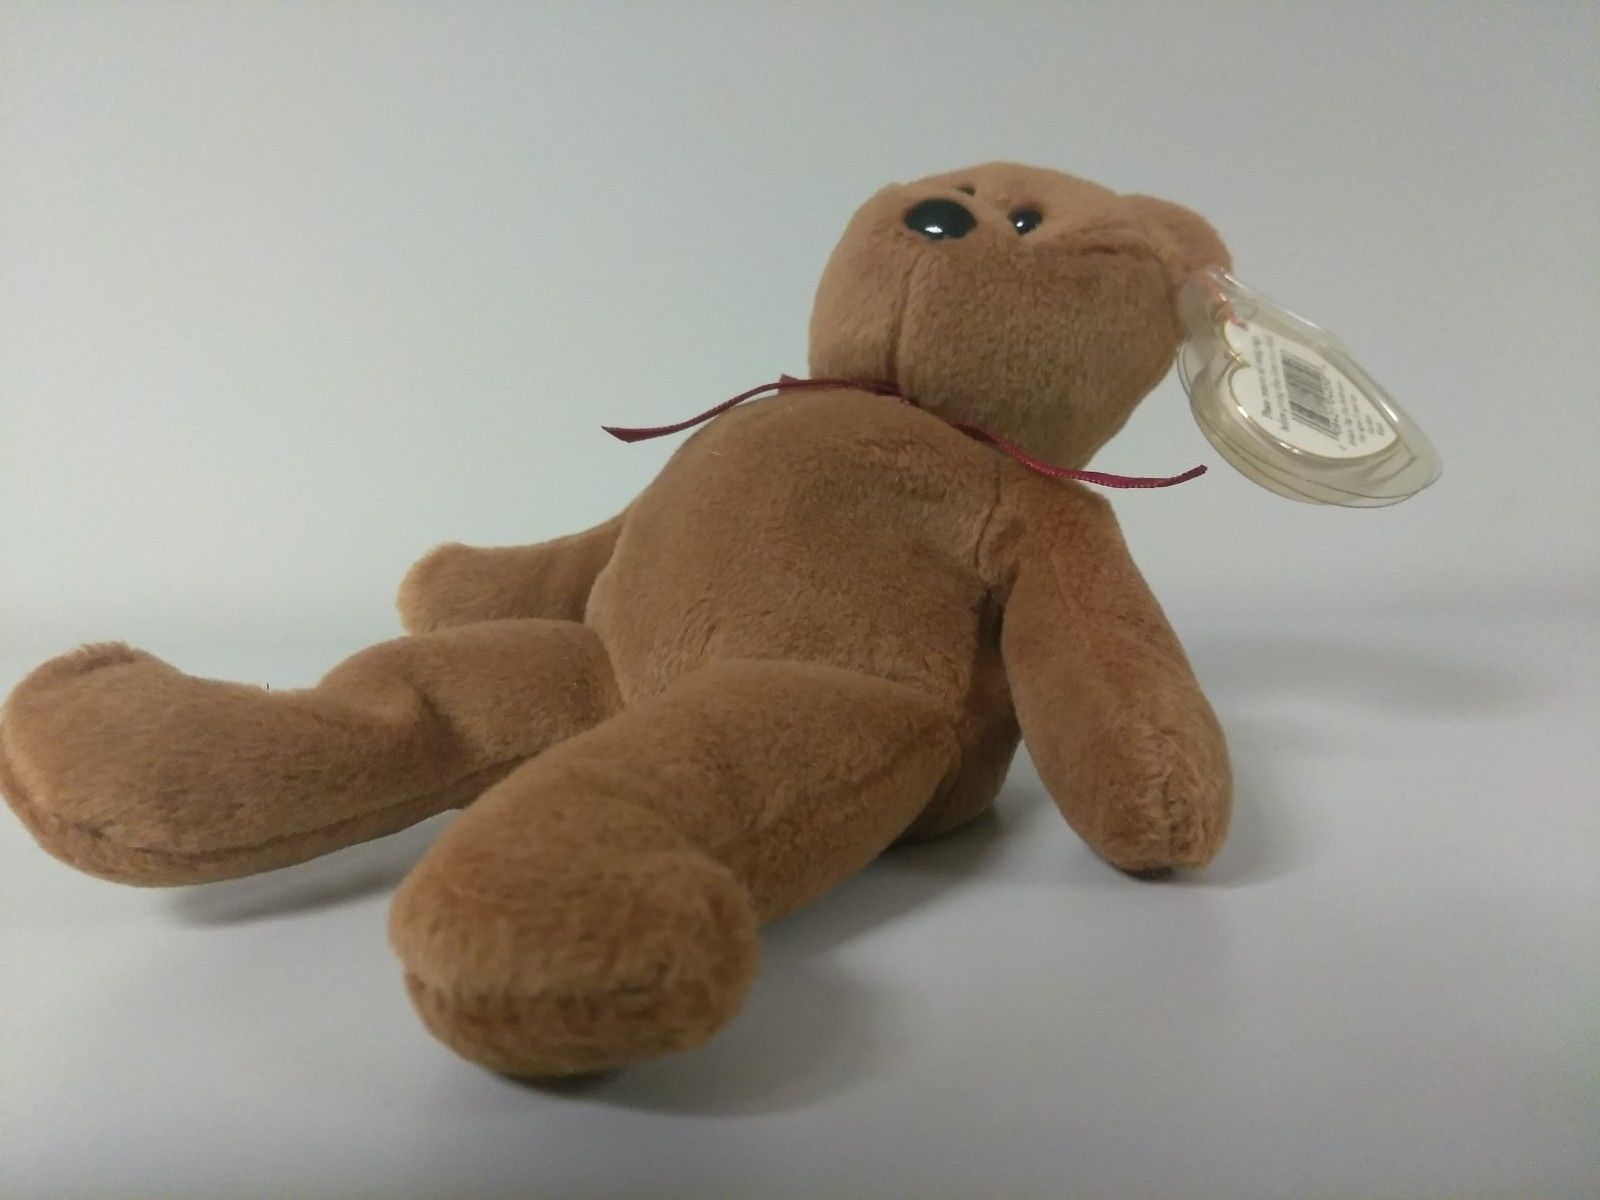 1st Edition TY Beanie Babies Rare Teddy no stamp, PVC and style line image 4